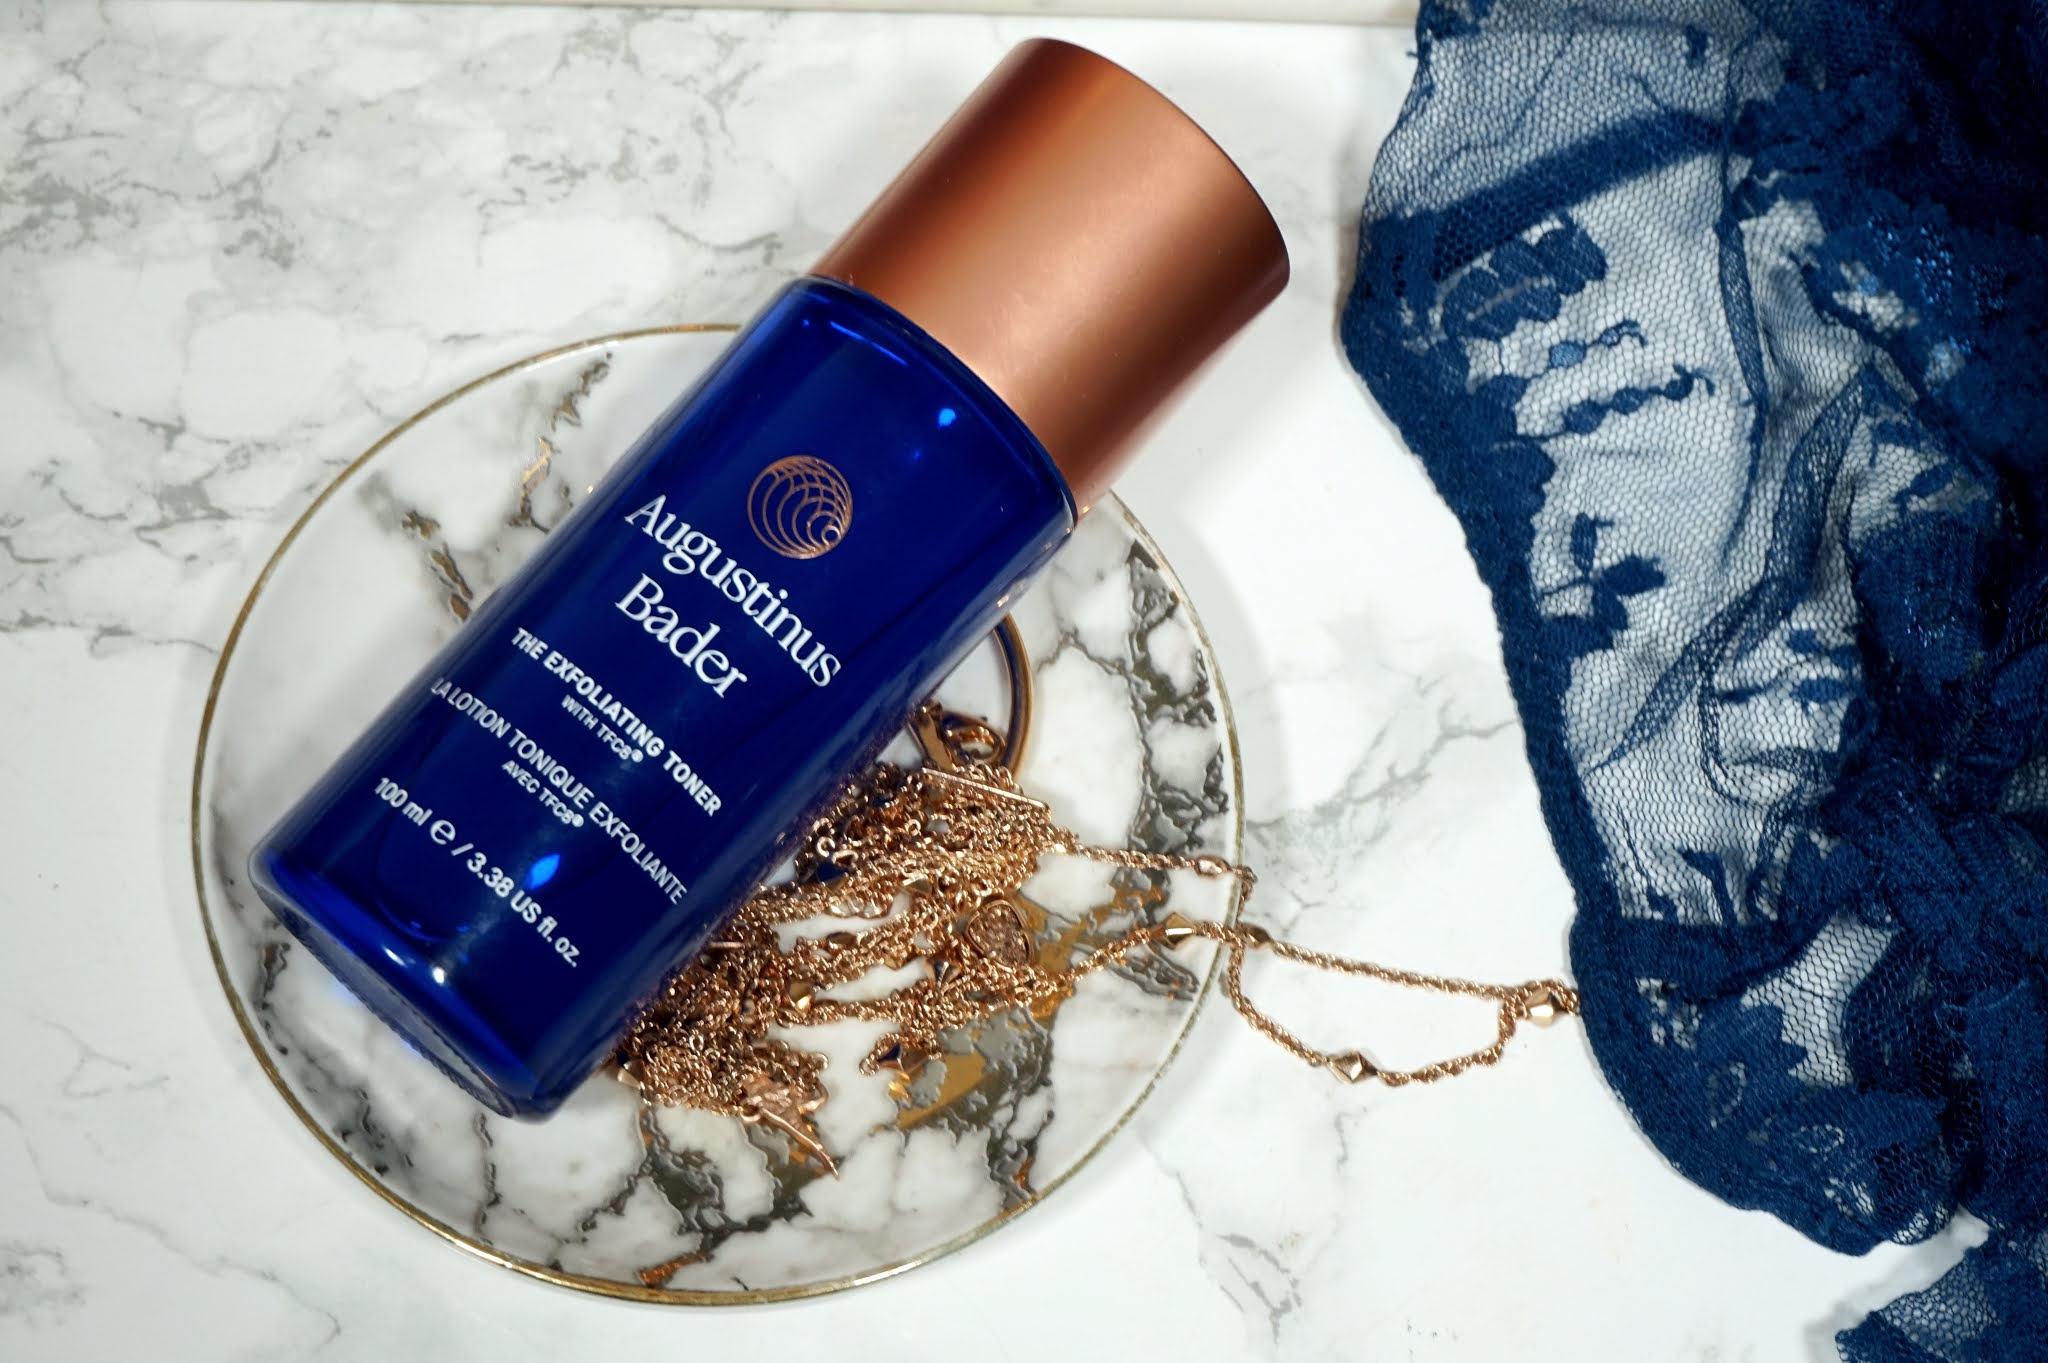 Augustinus Bader The Essence - Exfoliating Toner Review